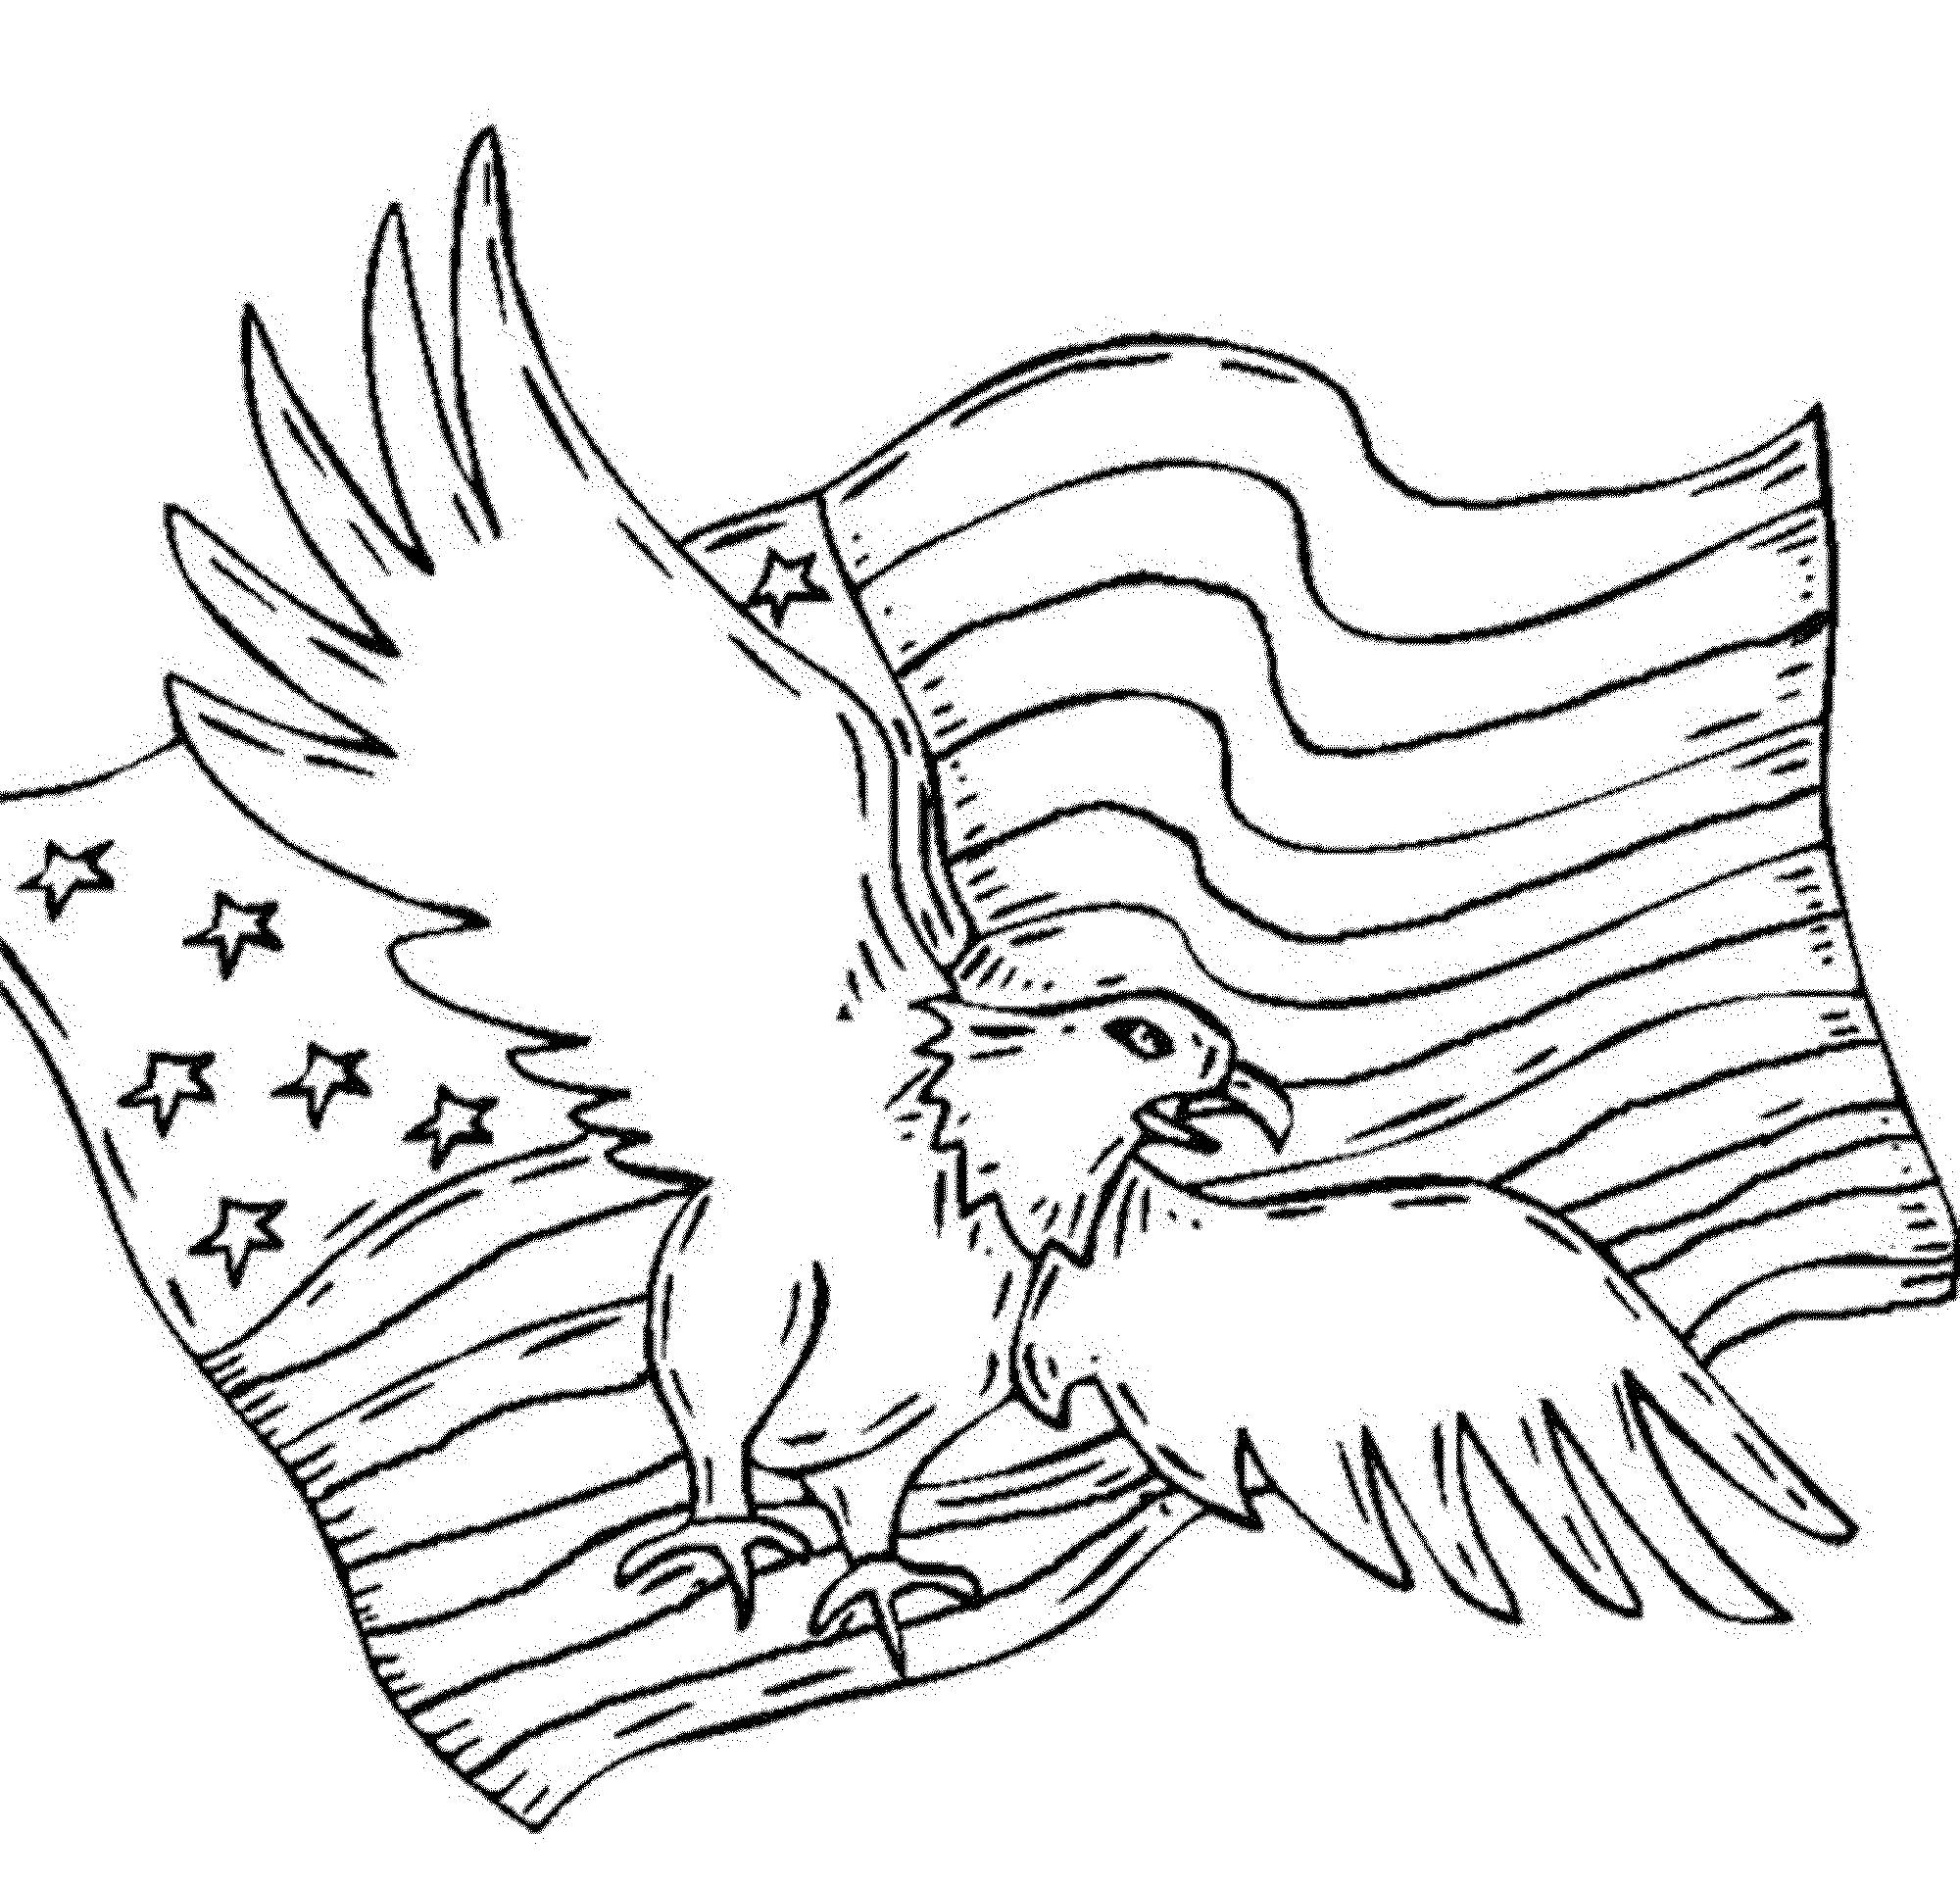 2000x1923 American Flag Coloring Page For The Love Of The Country